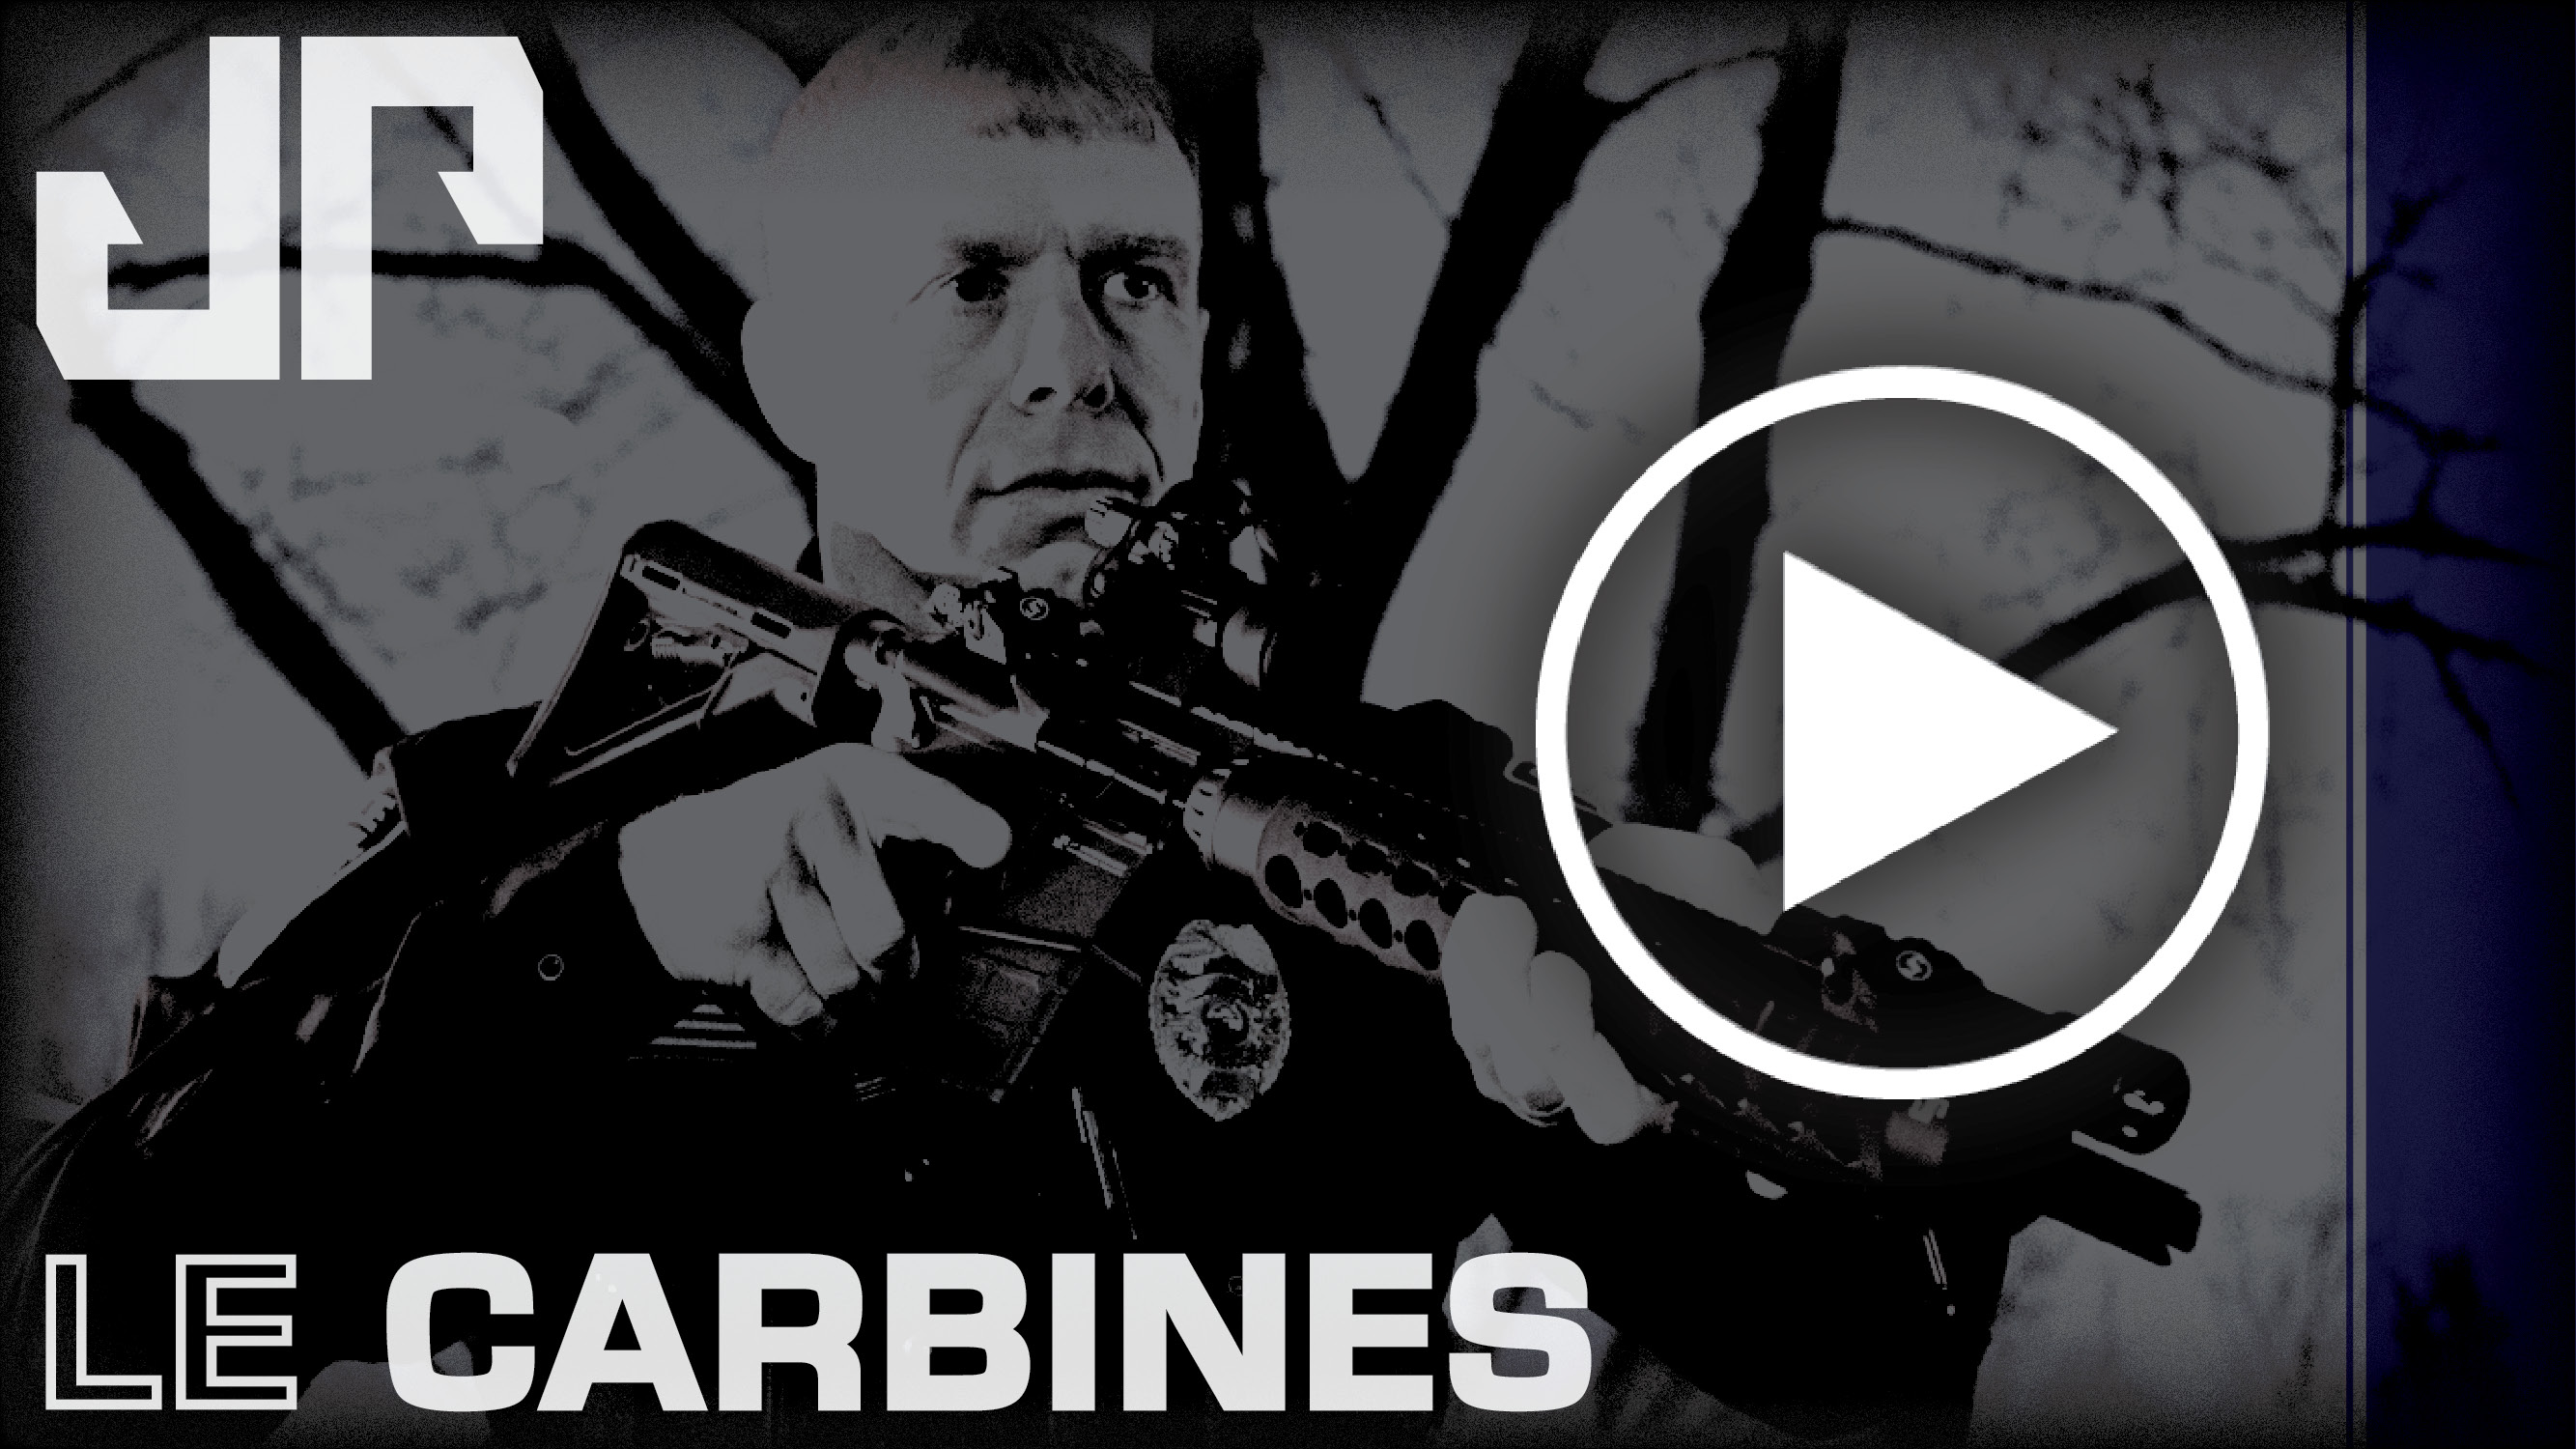 See more of our LE carbines